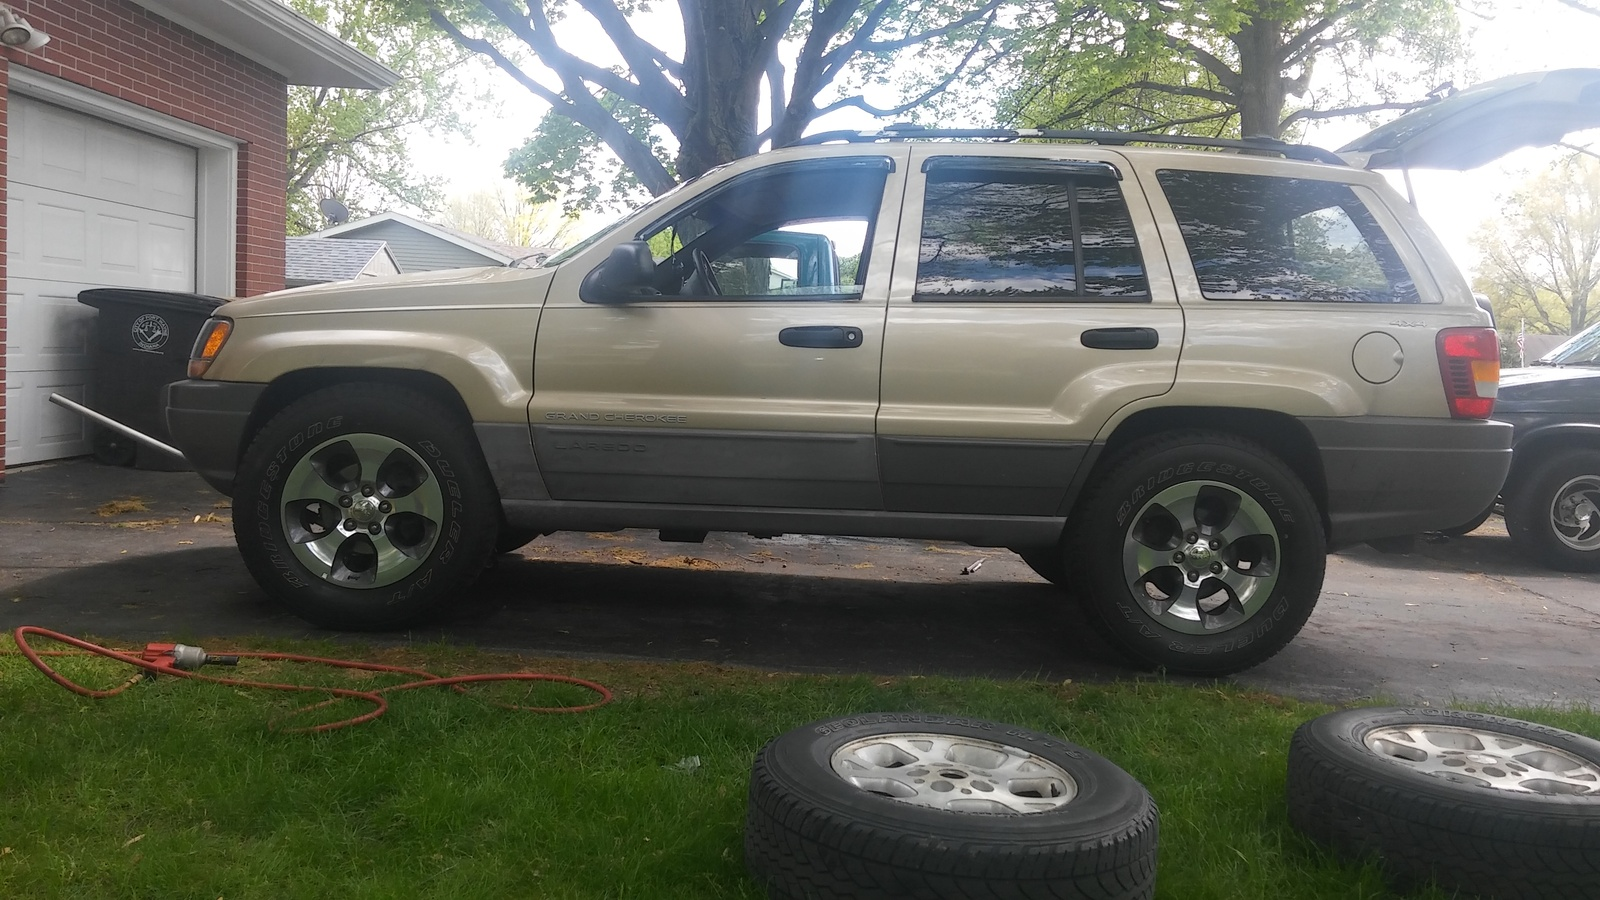 Wrangler Jeep Inside >> Jeep Grand Cherokee Questions - Larger than stock tires sizes - CarGurus